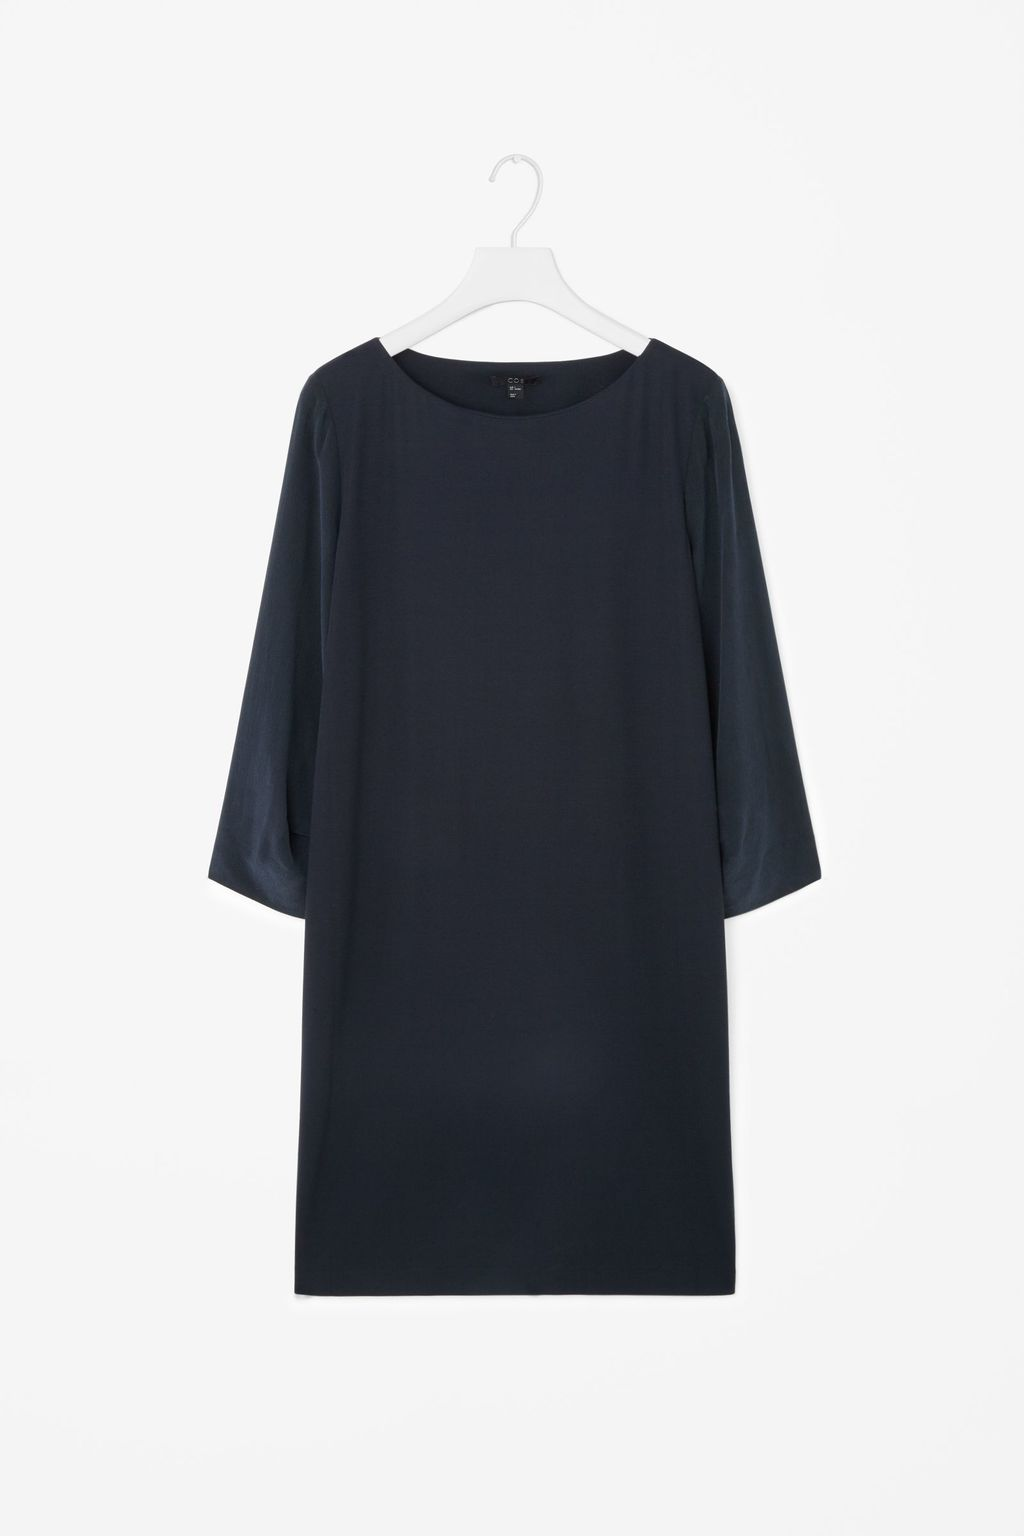 Silk Sleeve Short Dress - style: shift; length: mini; neckline: round neck; pattern: plain; predominant colour: navy; occasions: evening; fit: body skimming; fibres: silk - 100%; sleeve length: 3/4 length; sleeve style: standard; texture group: silky - light; pattern type: fabric; season: s/s 2016; wardrobe: event